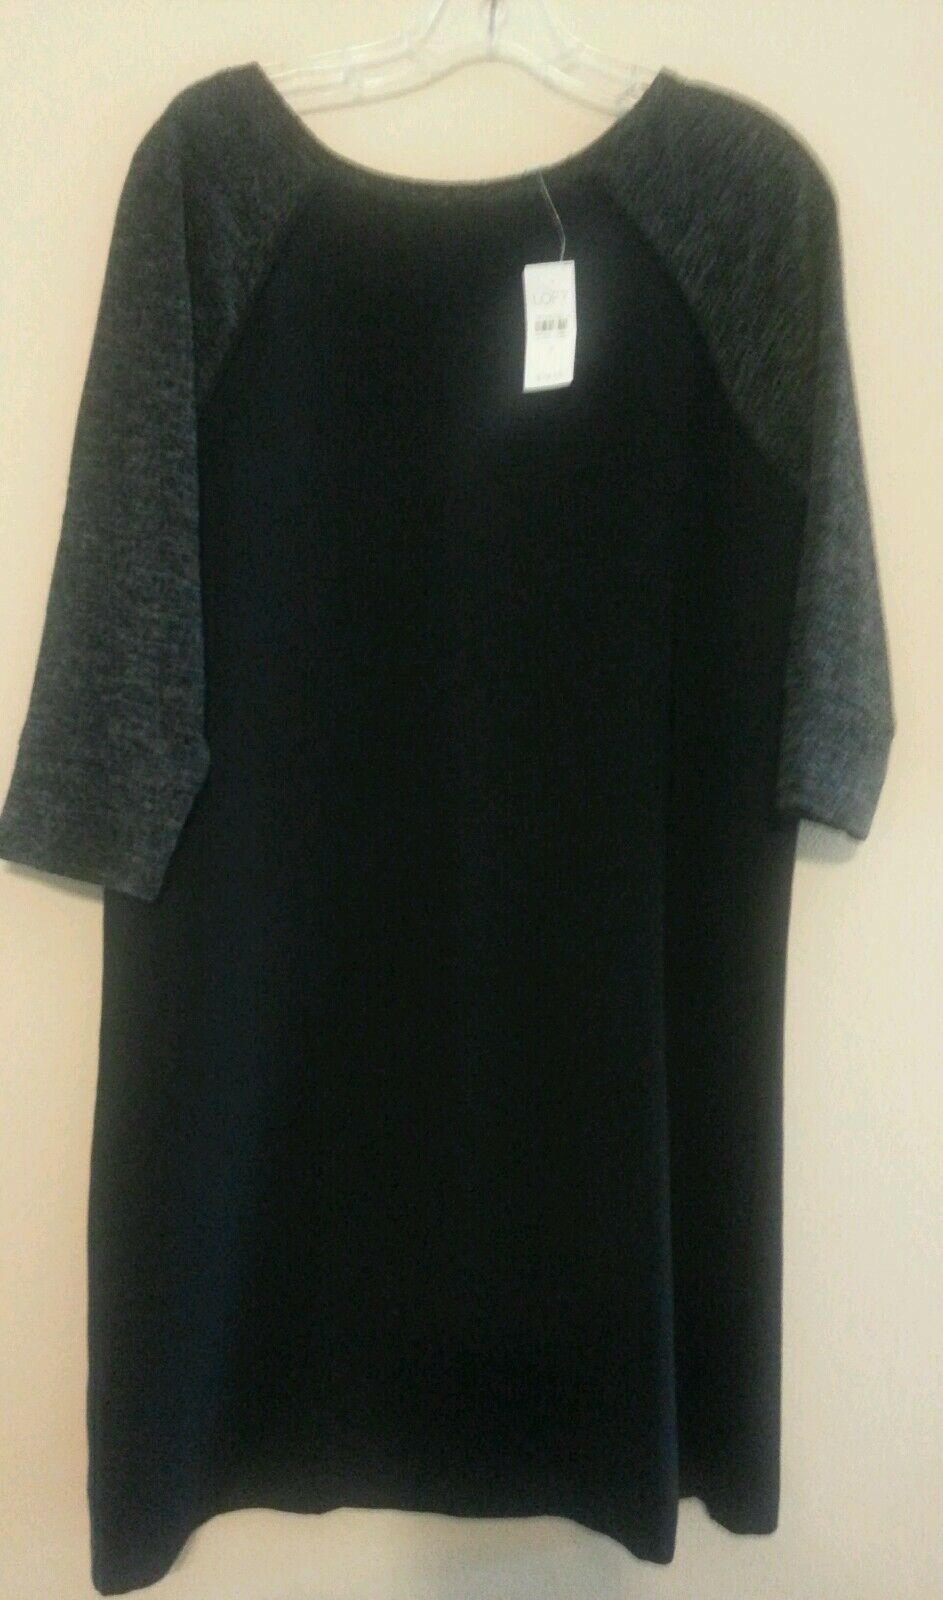 NWT Anne Taylor's loft sweater sleeves polyester body tunic tunic tunic dress Size 8 Retails 96fe15